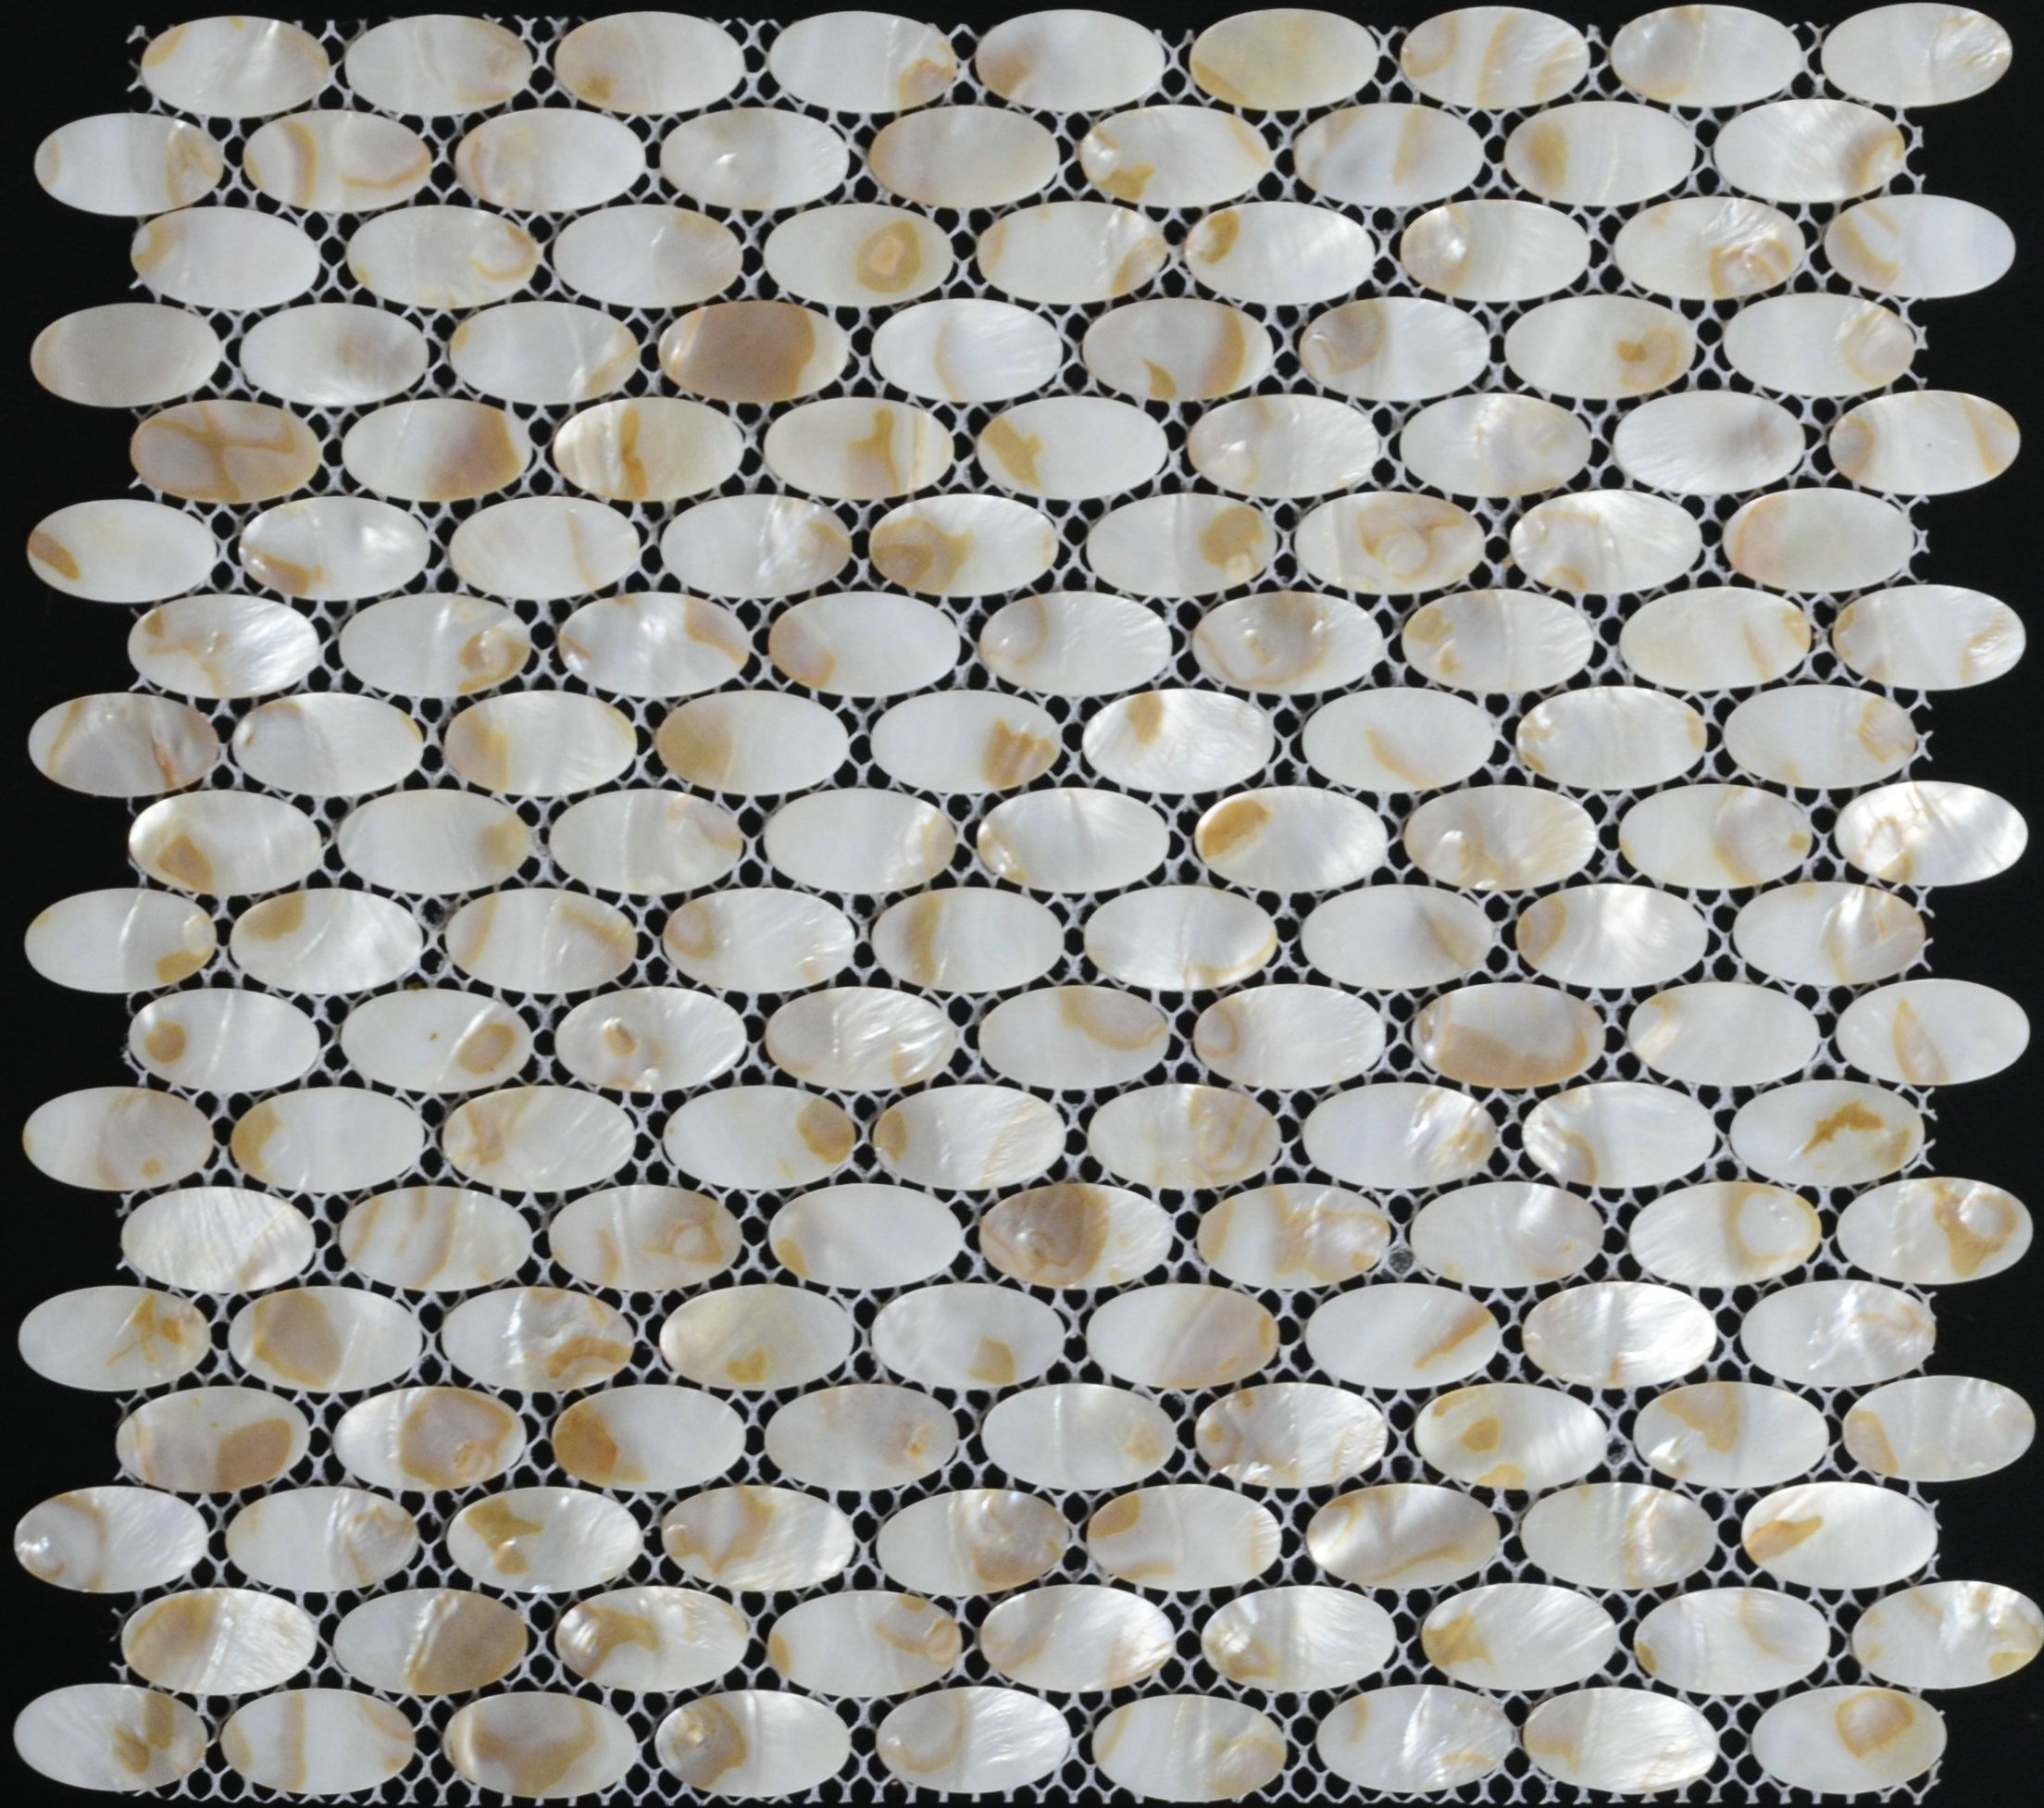 Mosaic liners art pattern mirrorred bathroom wall discount tiles - Online Buy Gorgous Mother Of Pearl Tiles At Off For Kitchen Backsplash Bathroom Wall Remolding Mother Of Pearl Tile It Is Called Shell Tile